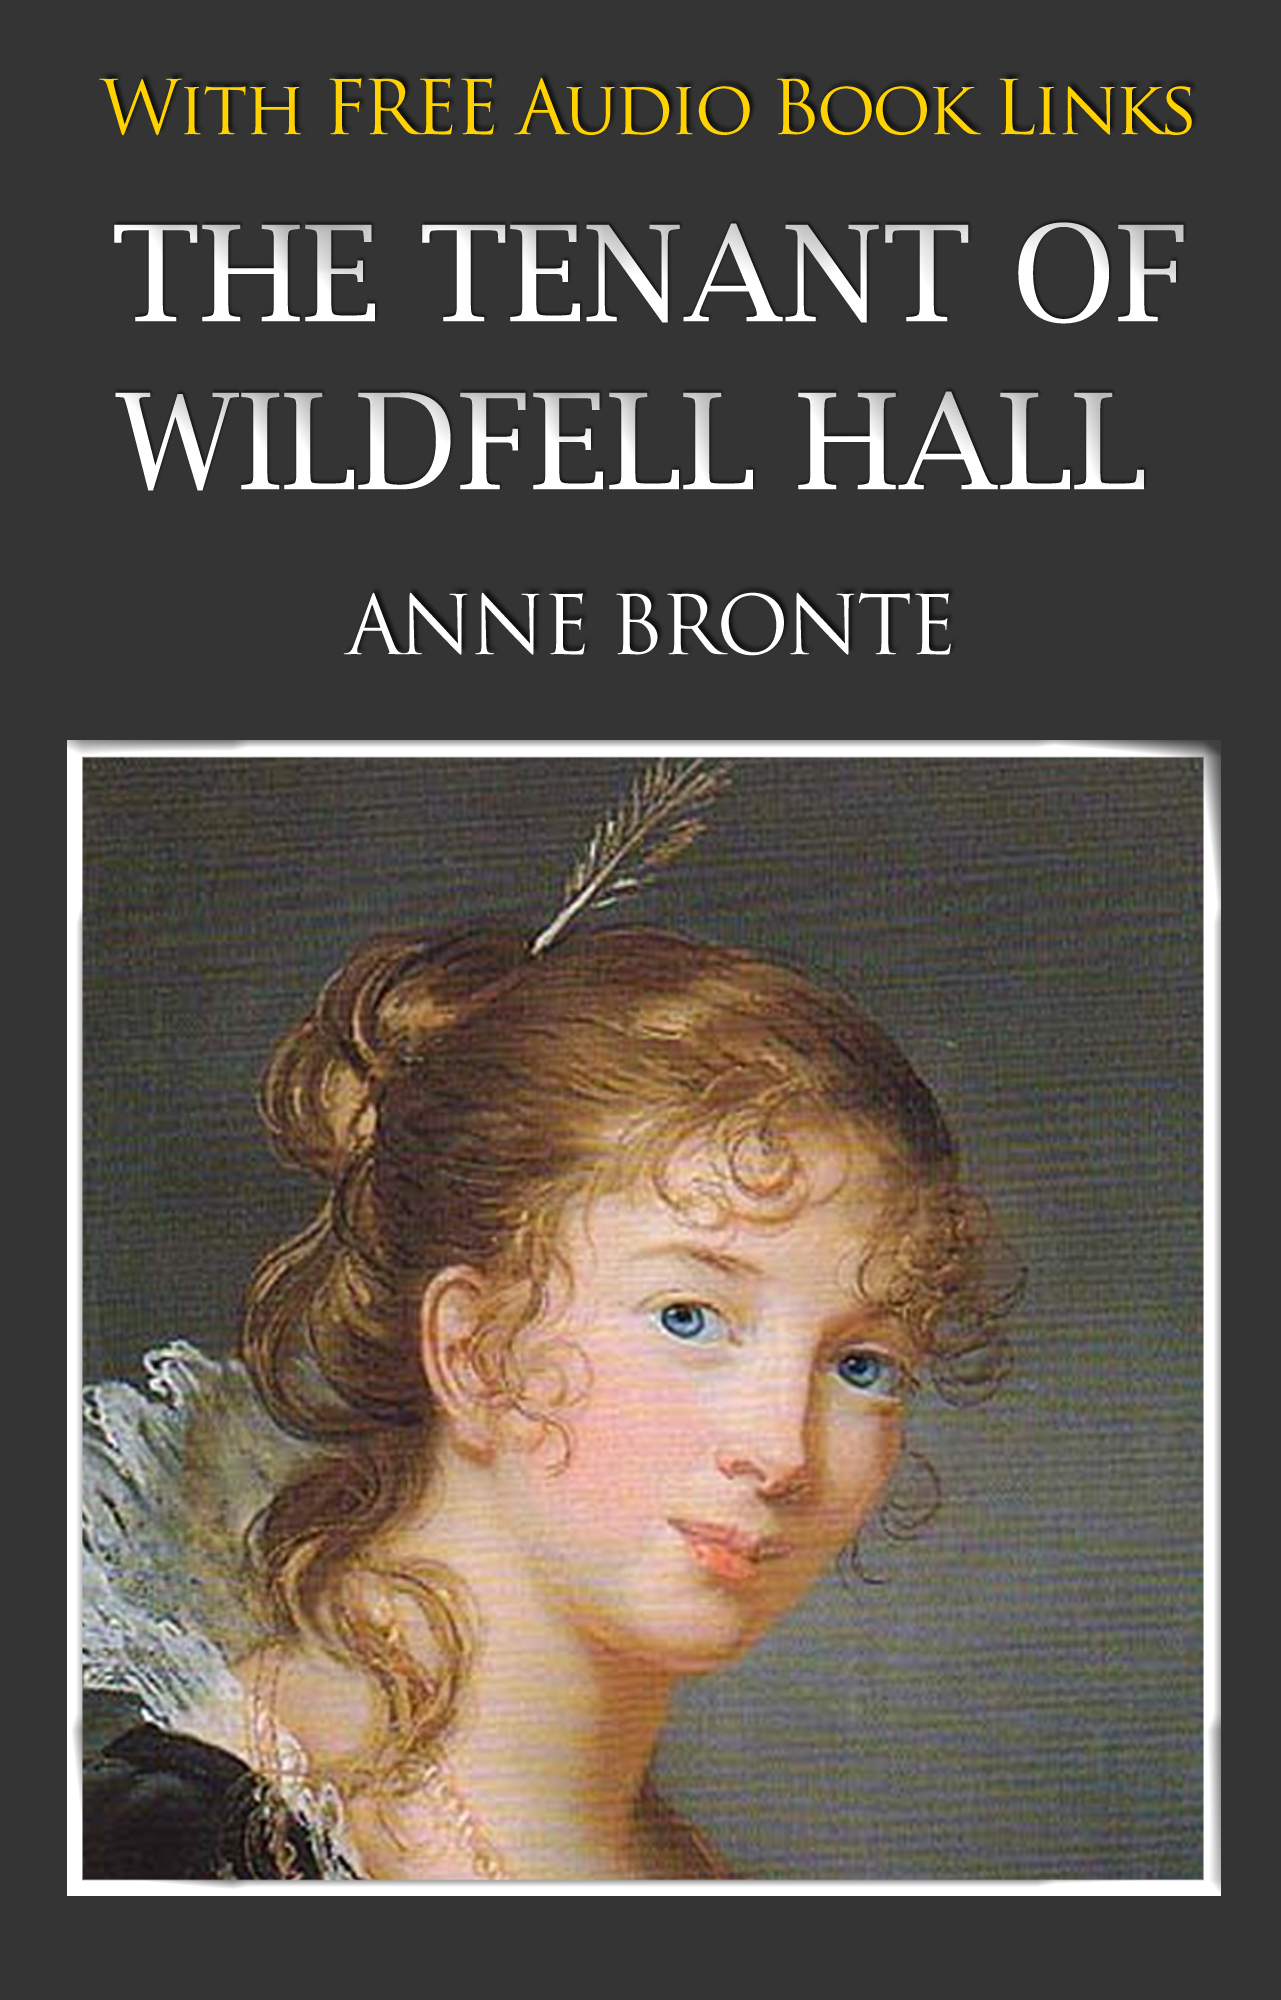 ANNE BRONTË - THE TENANT OF WILDFELL HALL Classic Novels: New Illustrated [Free Audio Links]